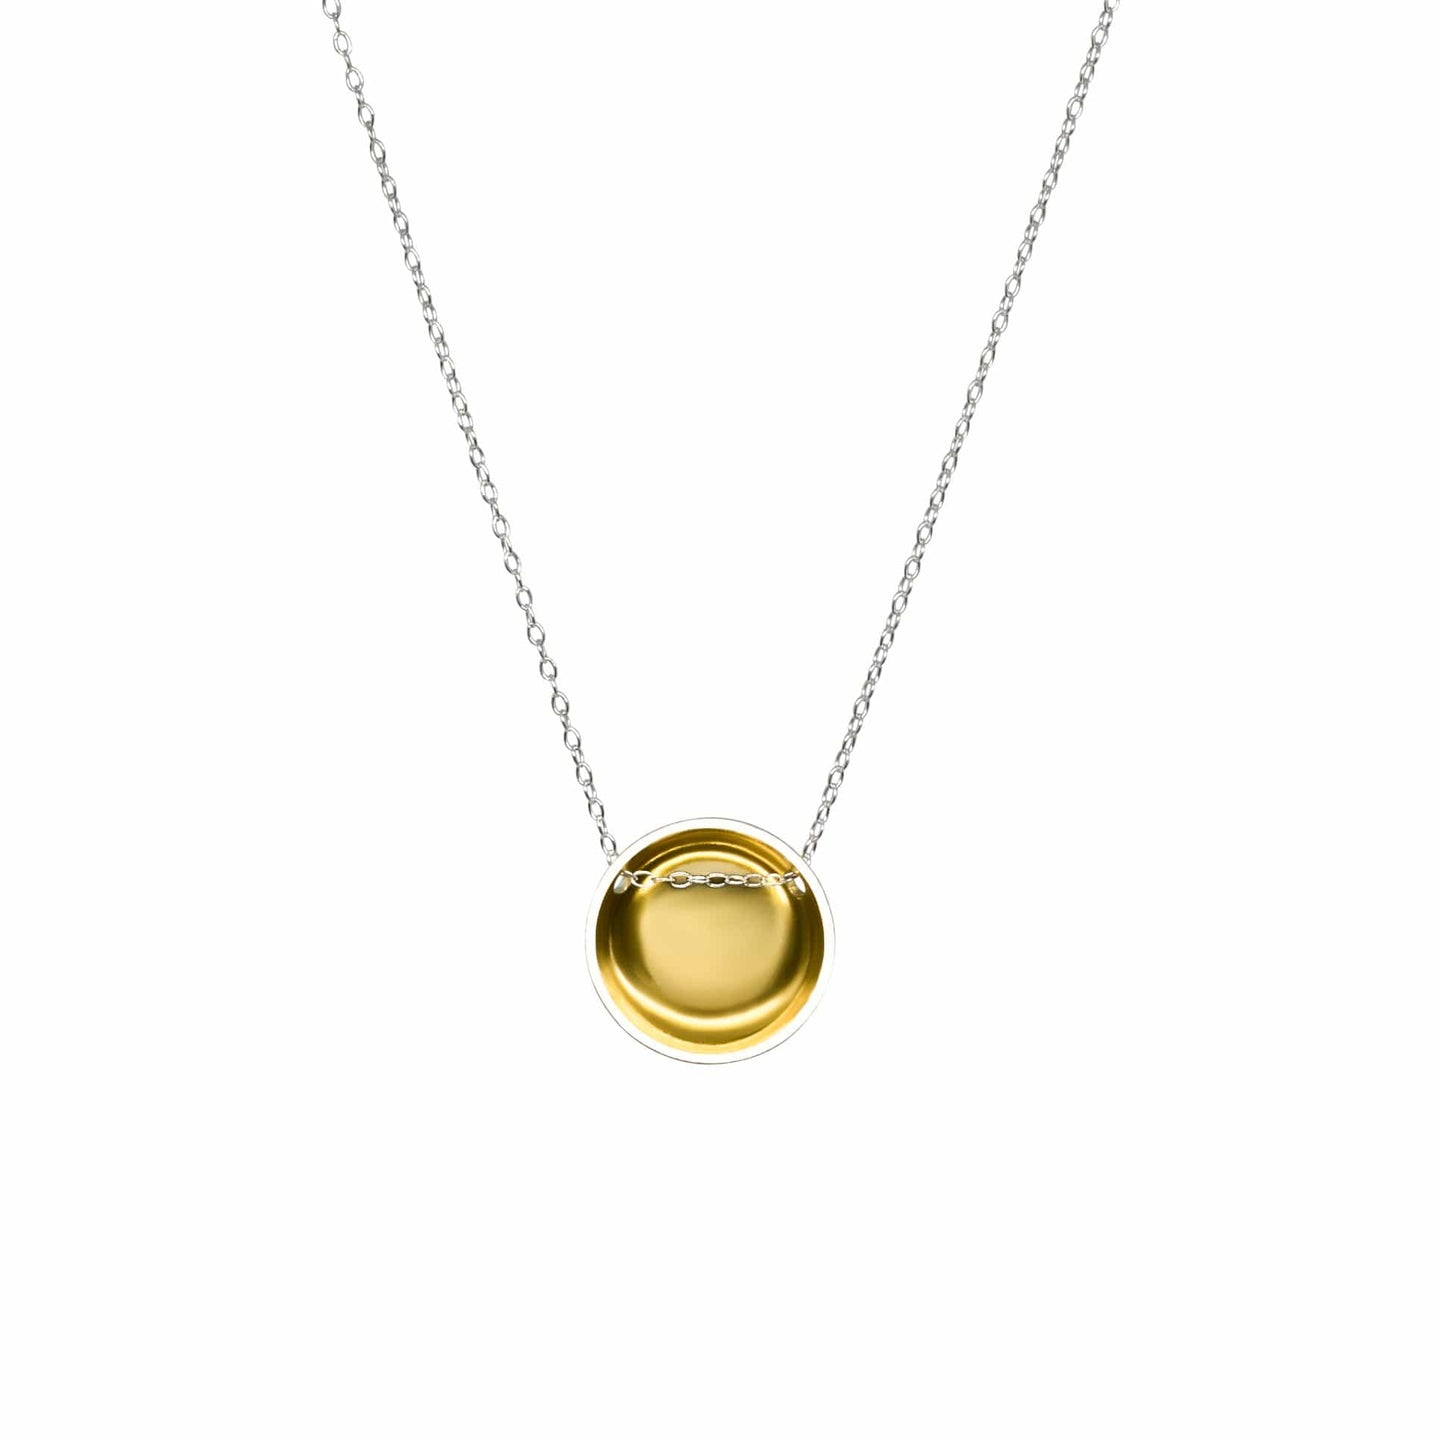 Gold and Silver Bowl Necklace